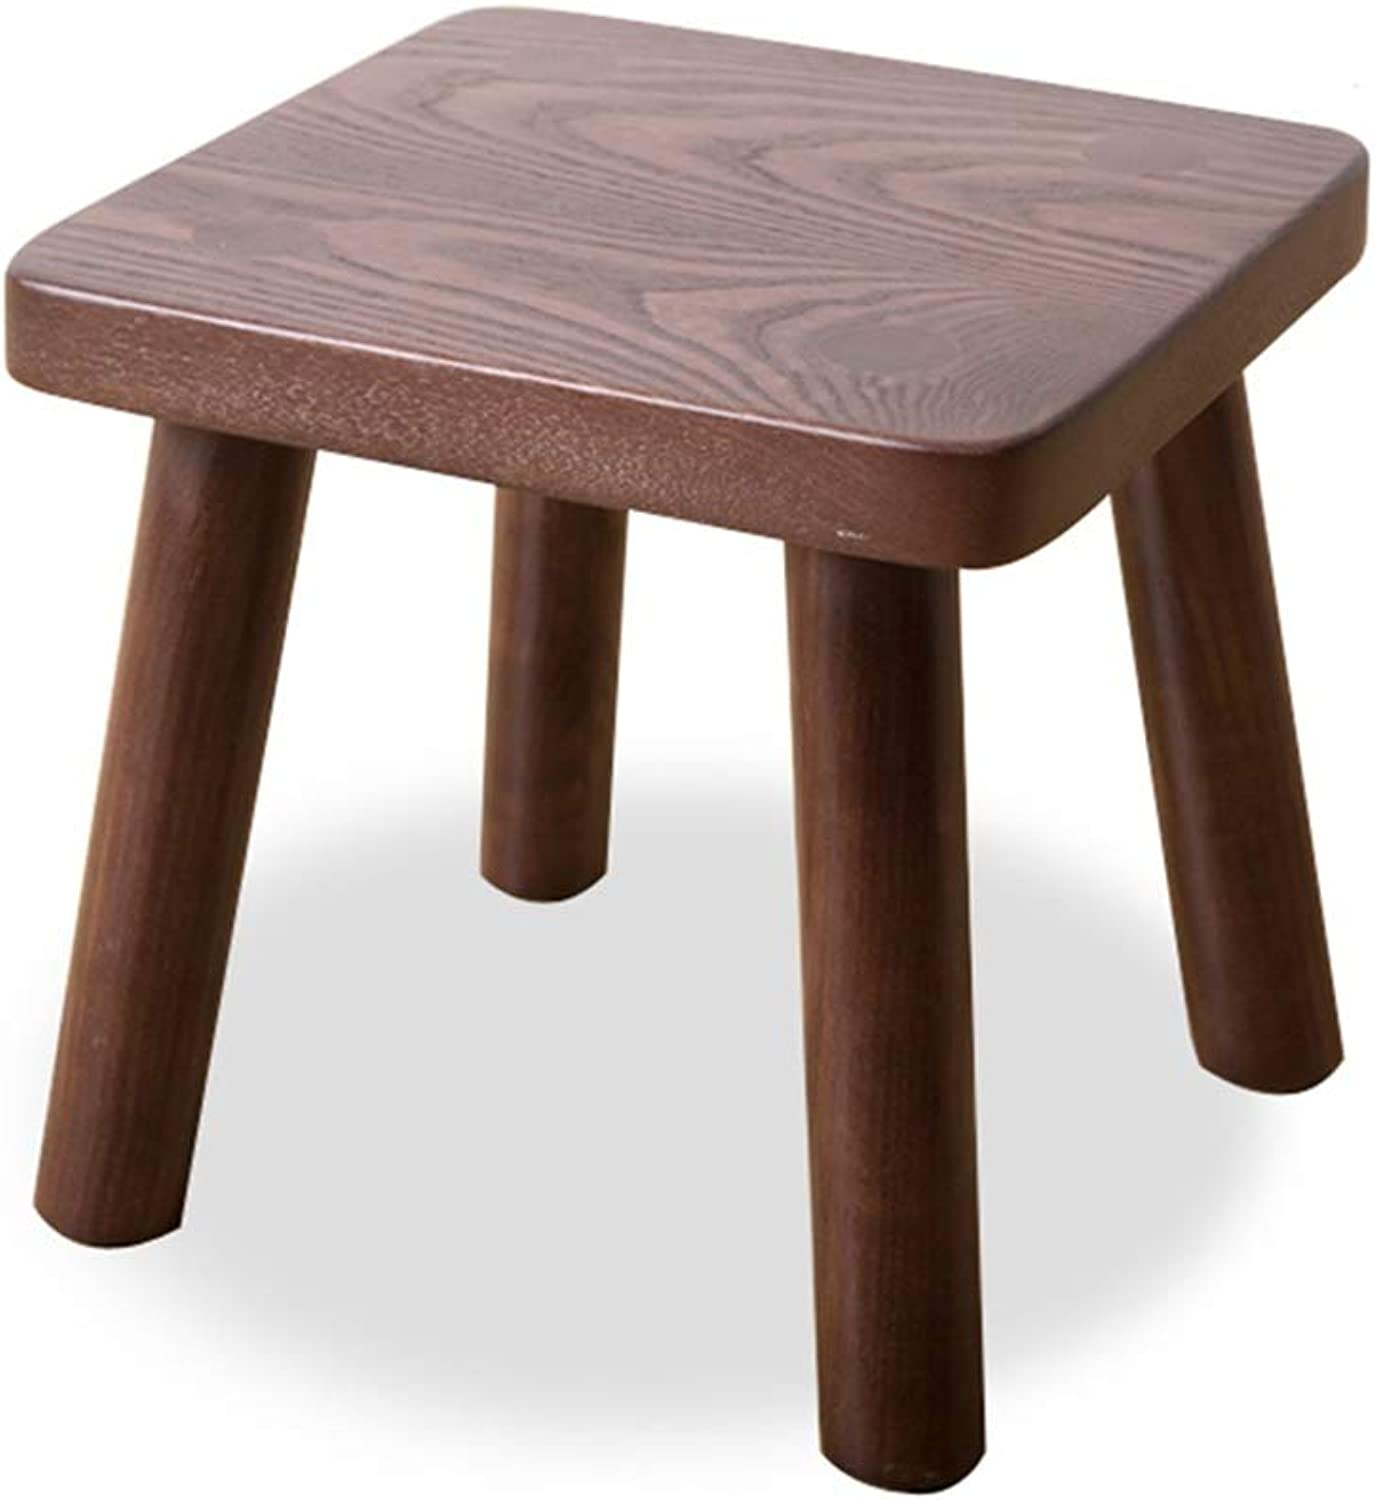 Small Stool-Household Adult Stool Living Room Stool Coffee Table Sitting Stool Wooden Stool Nordic Wood Small Bench FENPING (color   Walnut color, Size   Square 26  26  25cm)